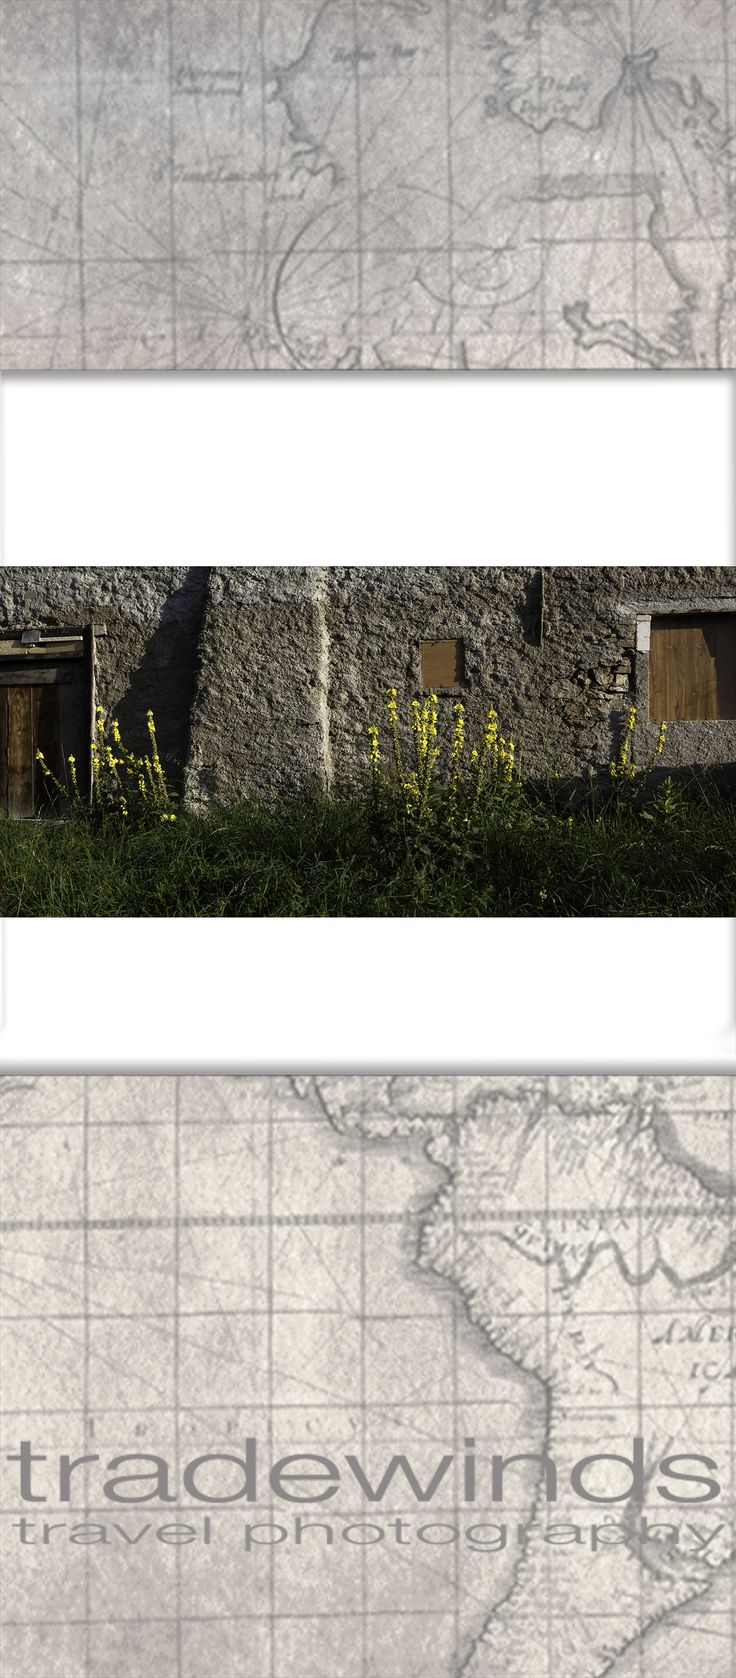 Yellow flowers grow along old stone building.